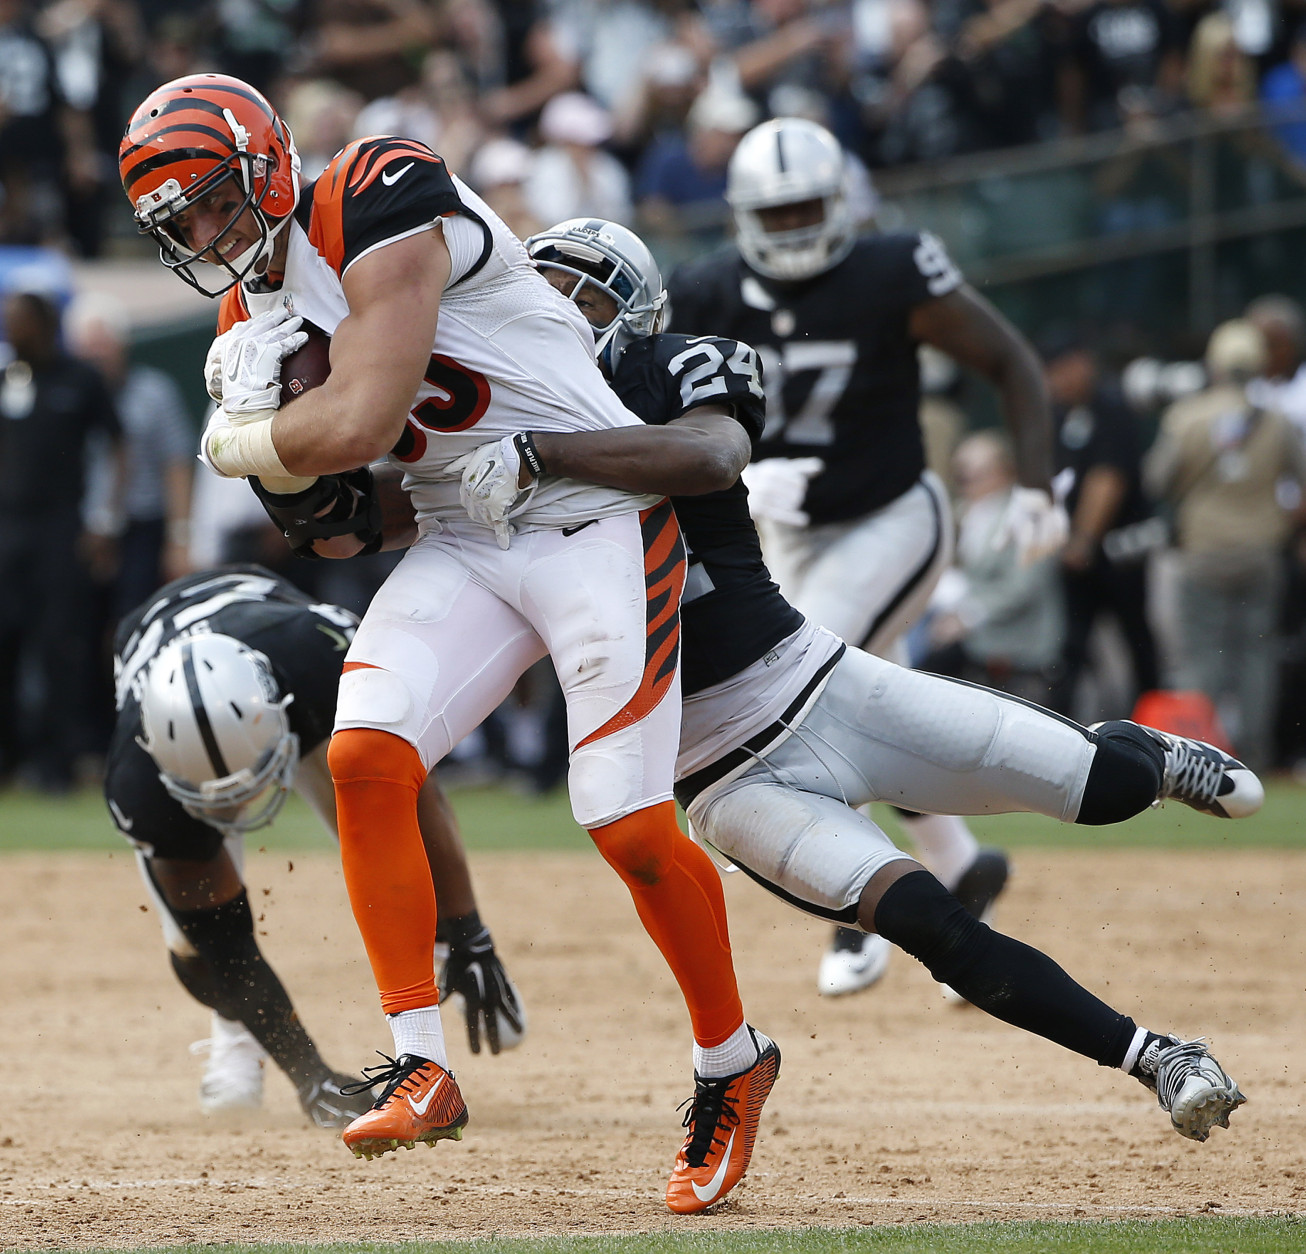 Cincinnati Bengals tight end Tyler Eifert (85) runs as Oakland Raiders cornerback Charles Woodson (24) tries to tackle him during the first half of an NFL football game in Oakland, Calif., Sunday, Sept. 13, 2015. (AP Photo/Tony Avelar)